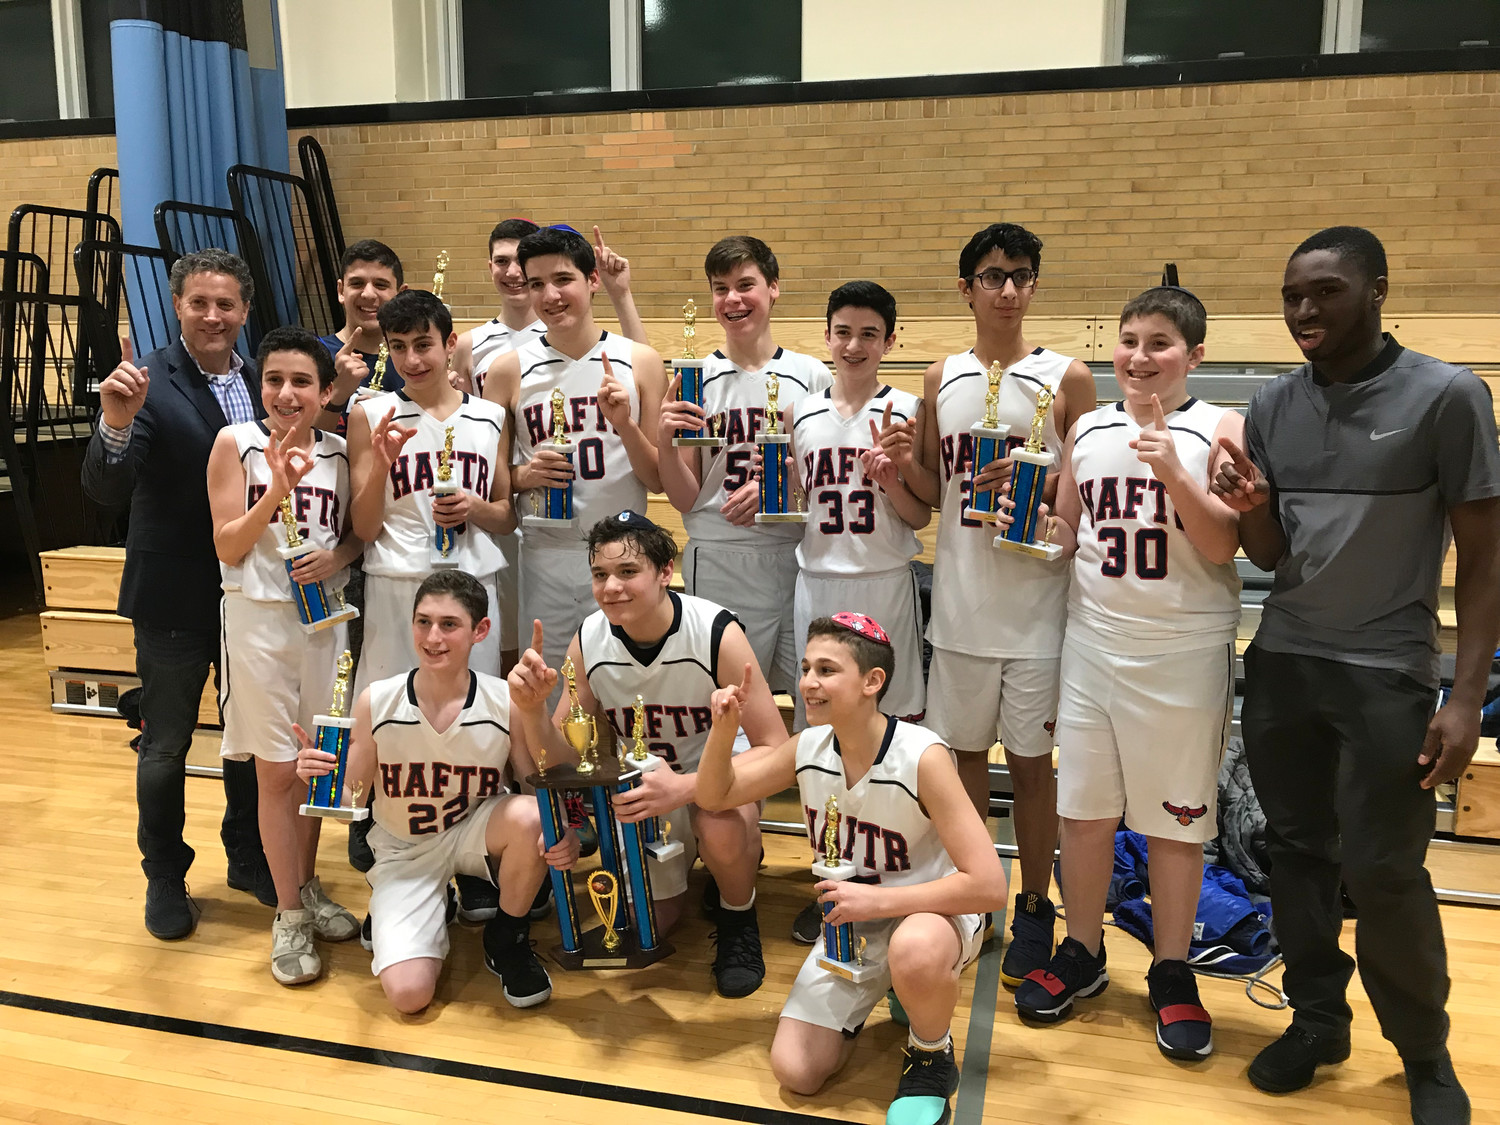 Twin championships for the HAFTR Hawks | Herald Community Newspapers ...